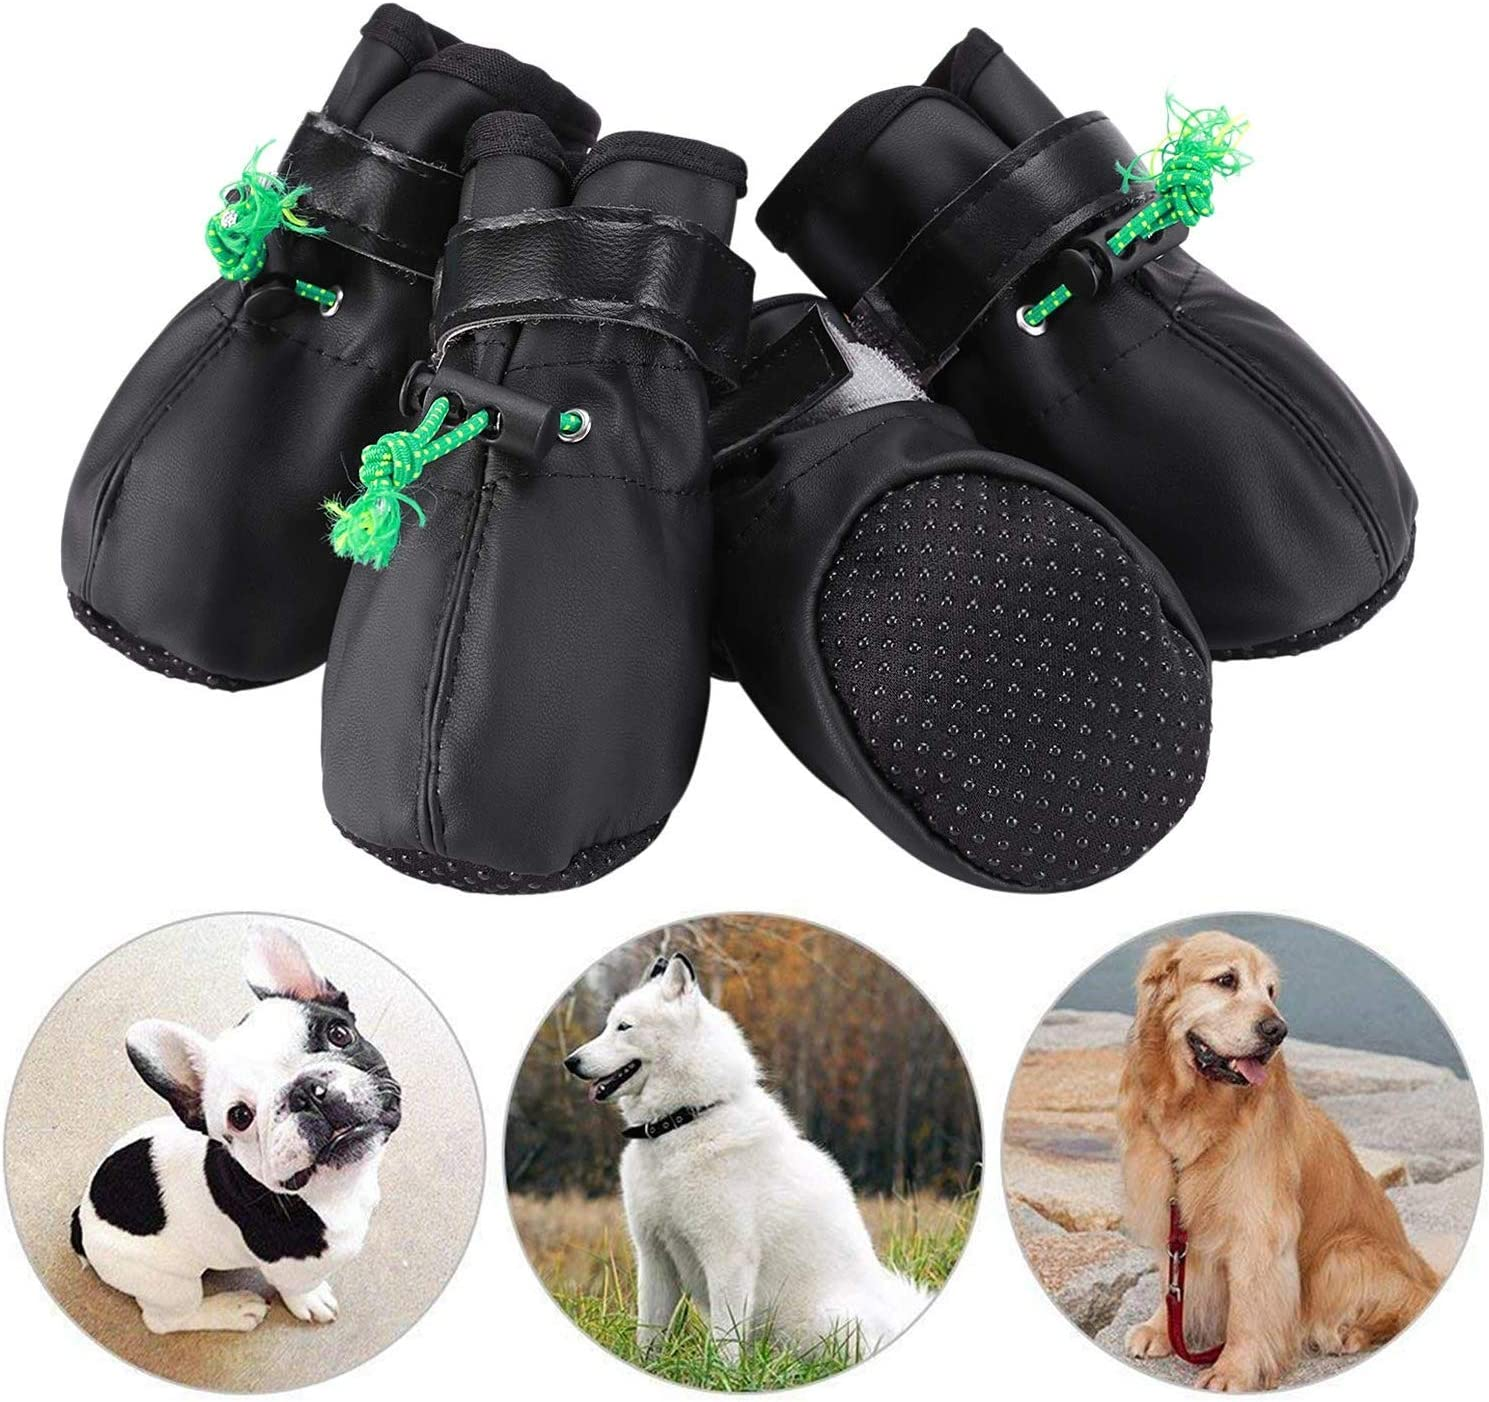 JATEN Dog Shoes,Soft PU Leather Dog Boots with Velcro Straps and Elastic Adjusting Buckle Straps,Anti-Slip Sole Paw Protectors for Dog Hot Pavement Hiking Running Indoor Walking Stay On Shoes